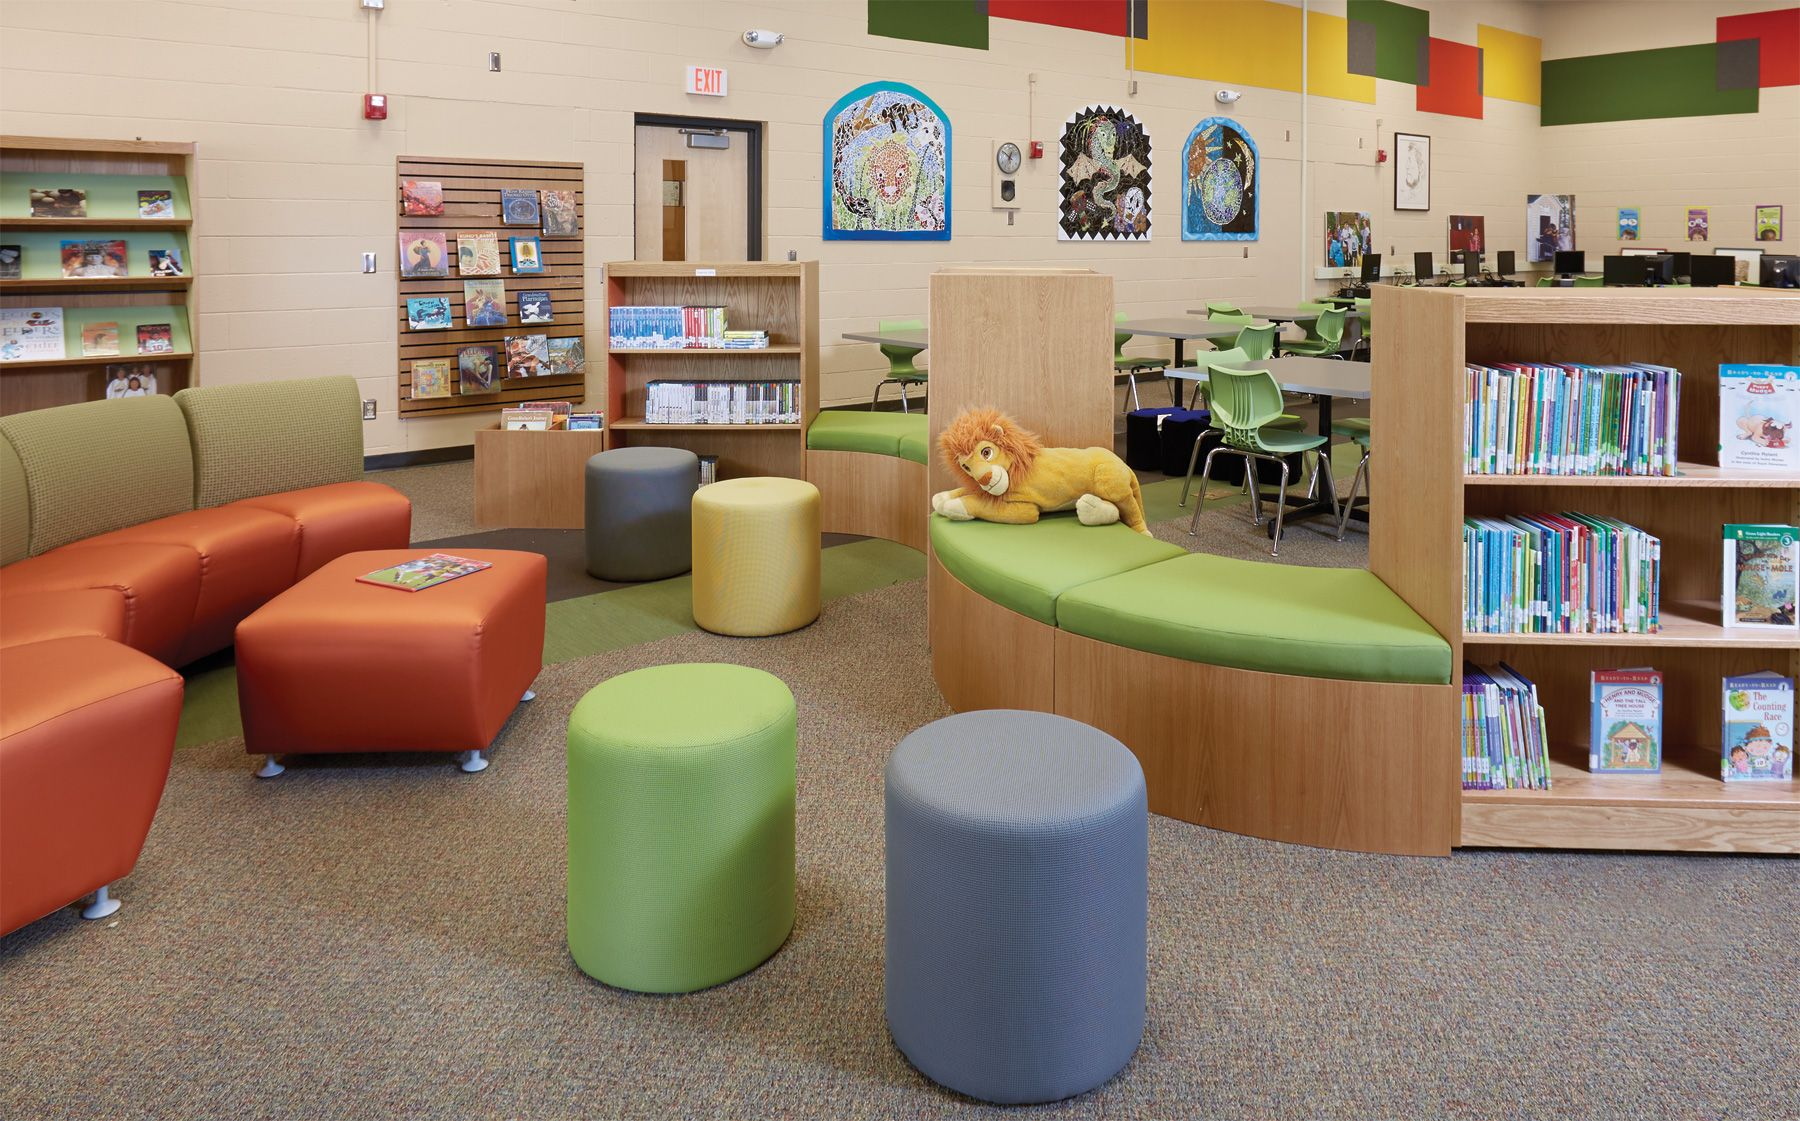 Library decorating ideas abraham lincoln elementary for Interior design and decorating schools in lagos